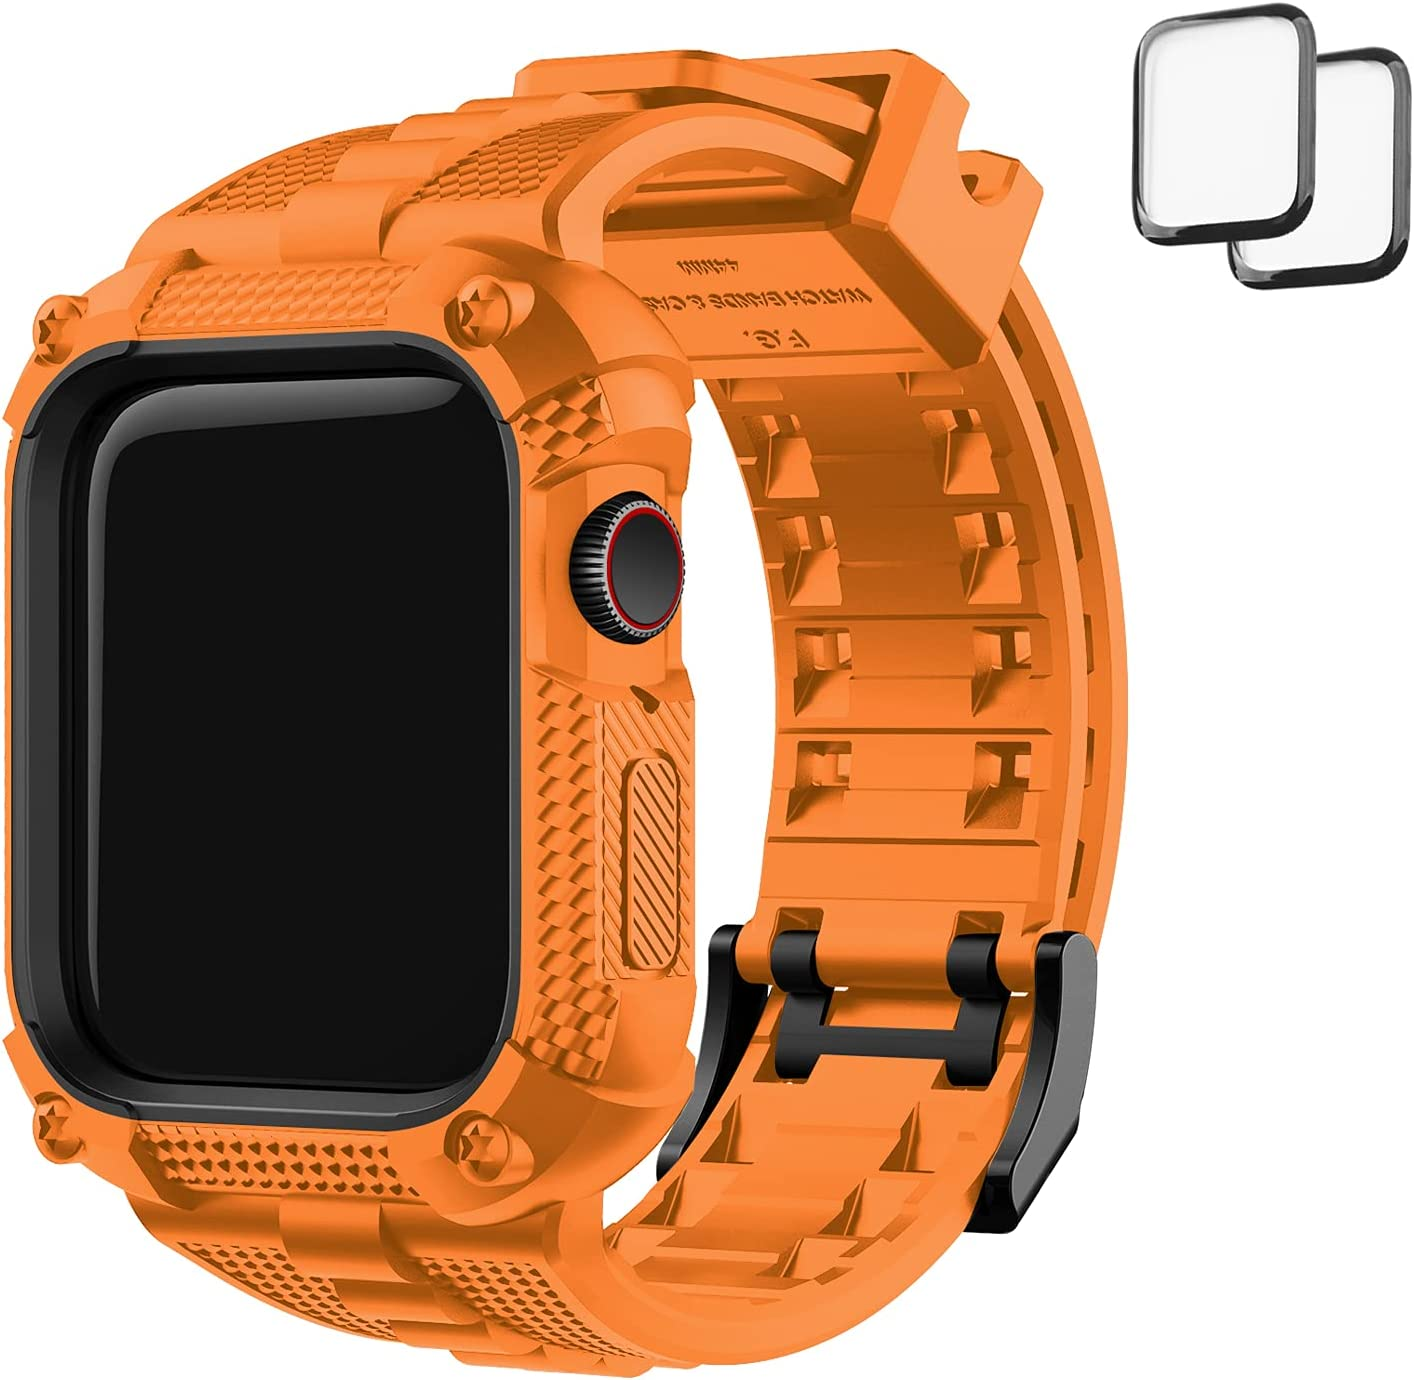 Fullmosa Compatible with Apple Watch Band 40mm with Bumper Case, Rugged iWatch Band with Screen Protector for Apple Watch Series 6/5/4/SE, Orange